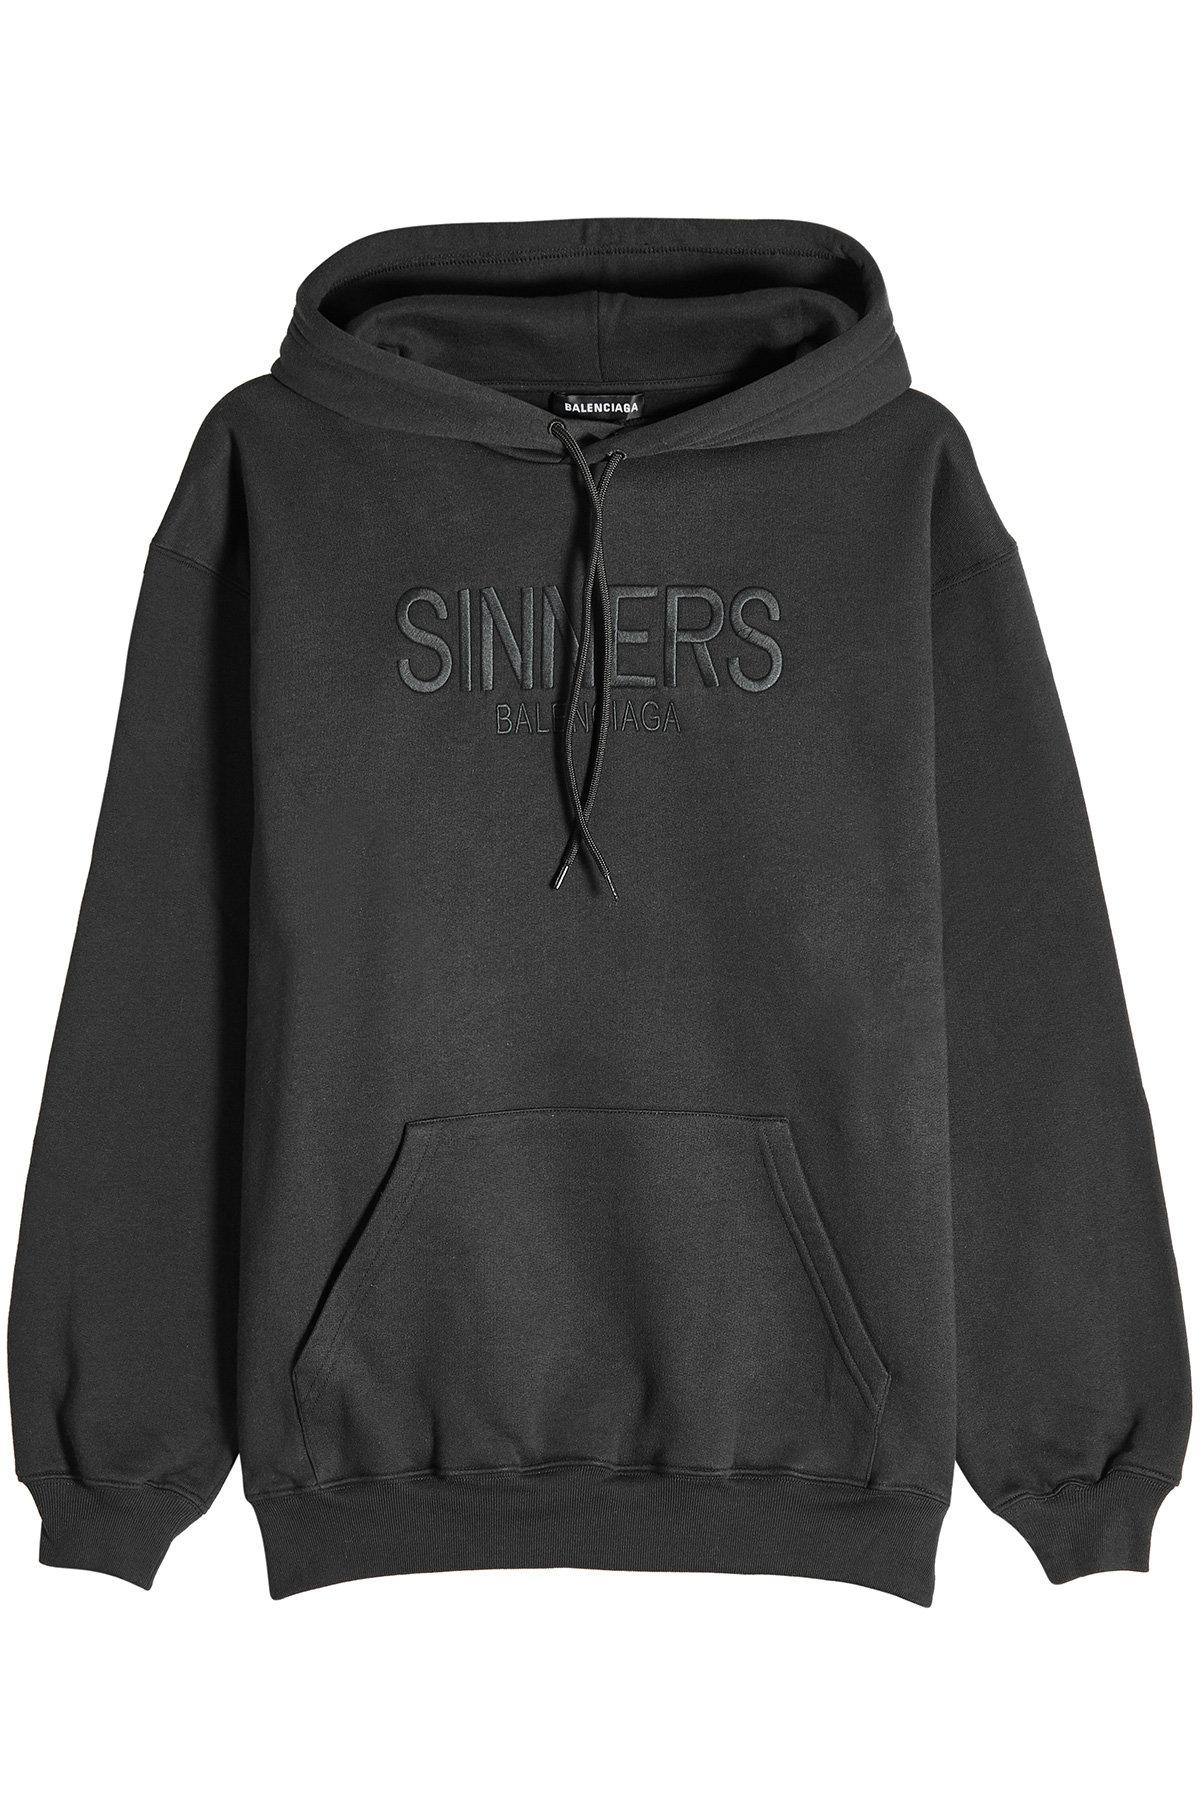 new photos attractive price uk cheap sale Sinners Cotton Hoody in Black